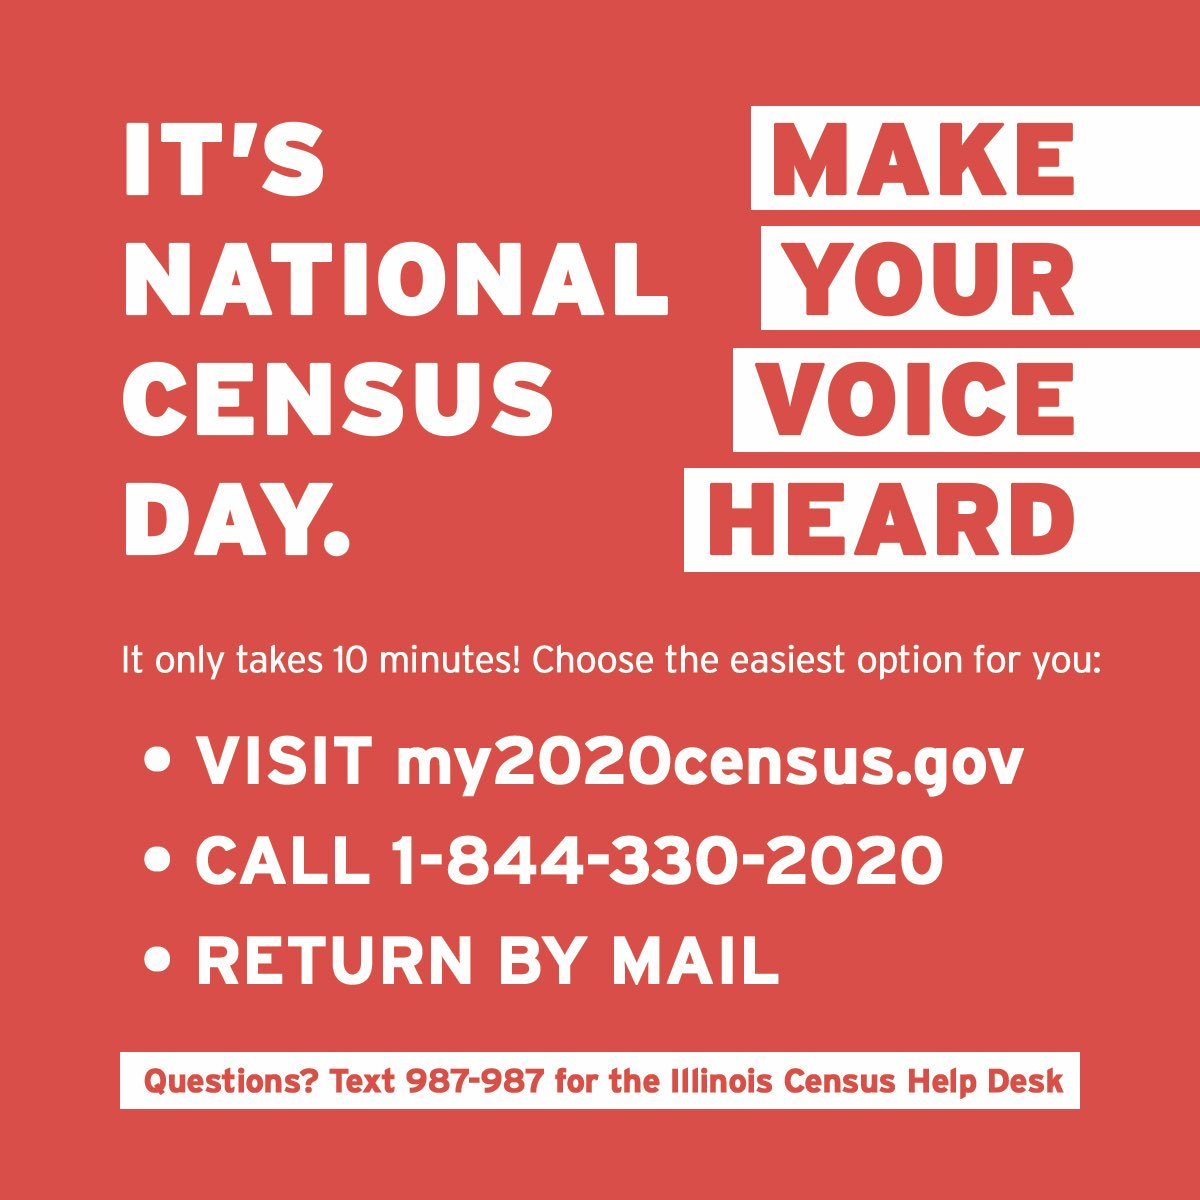 Today is #NationalCensusDay.   It's incredibly important to make sure every Illinois resident – from newborn babies to great grandparents – is counted in the census.